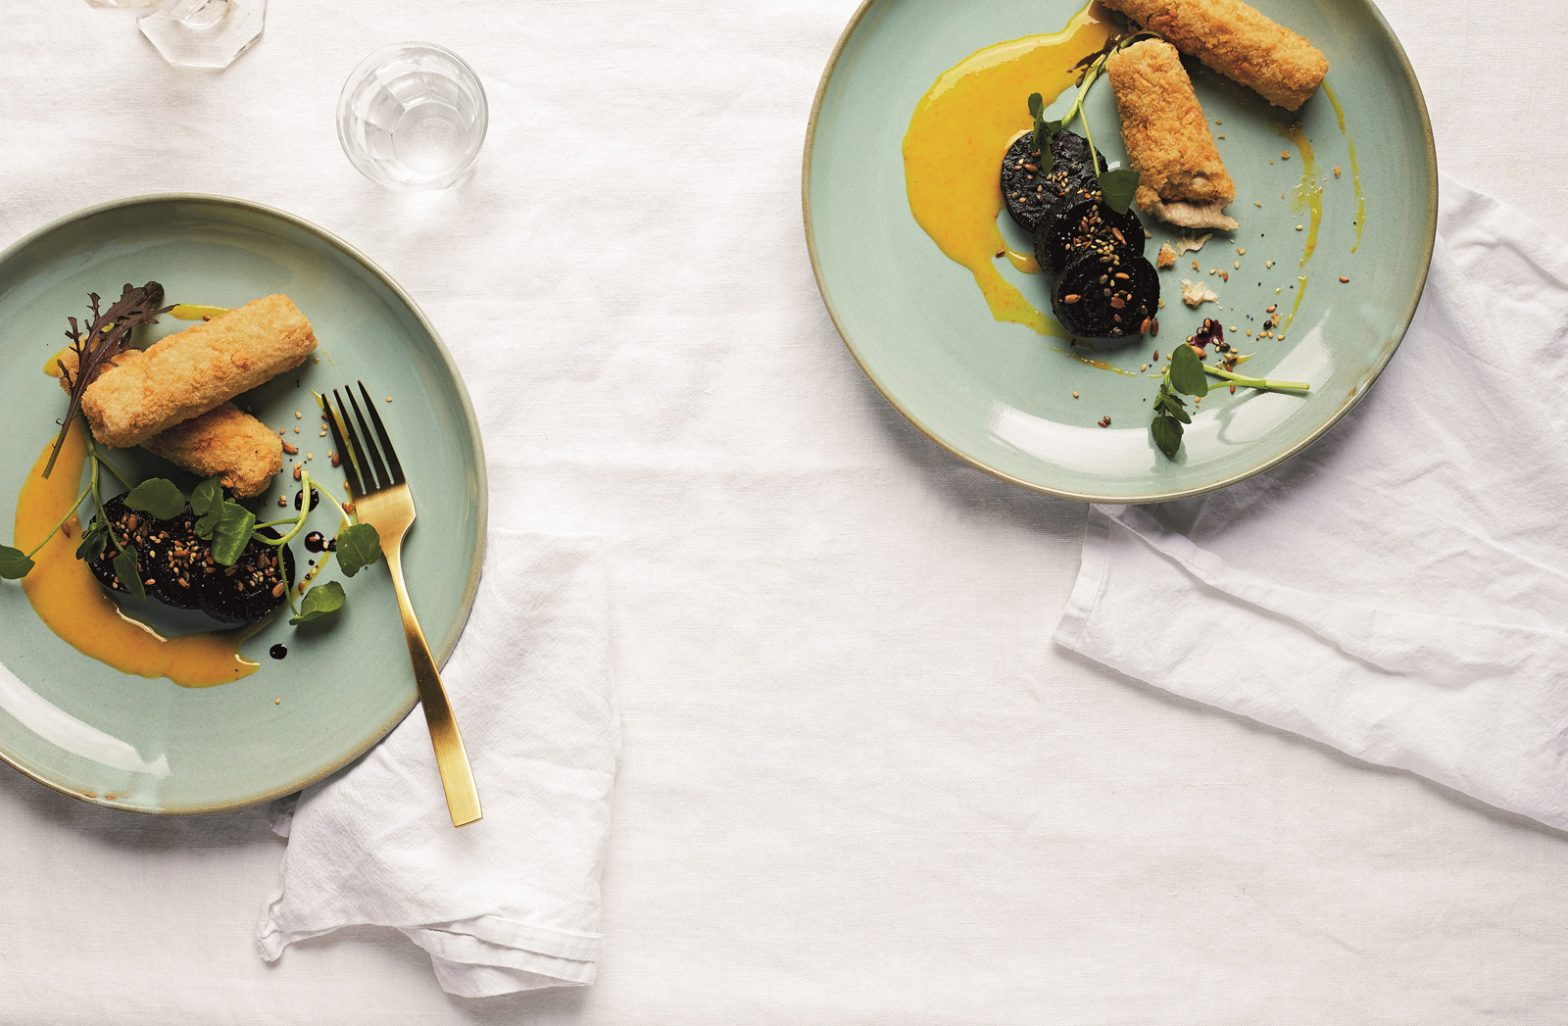 Smoked Cashew Croquetas (with port-glazed red beetroot and orange emulsion)